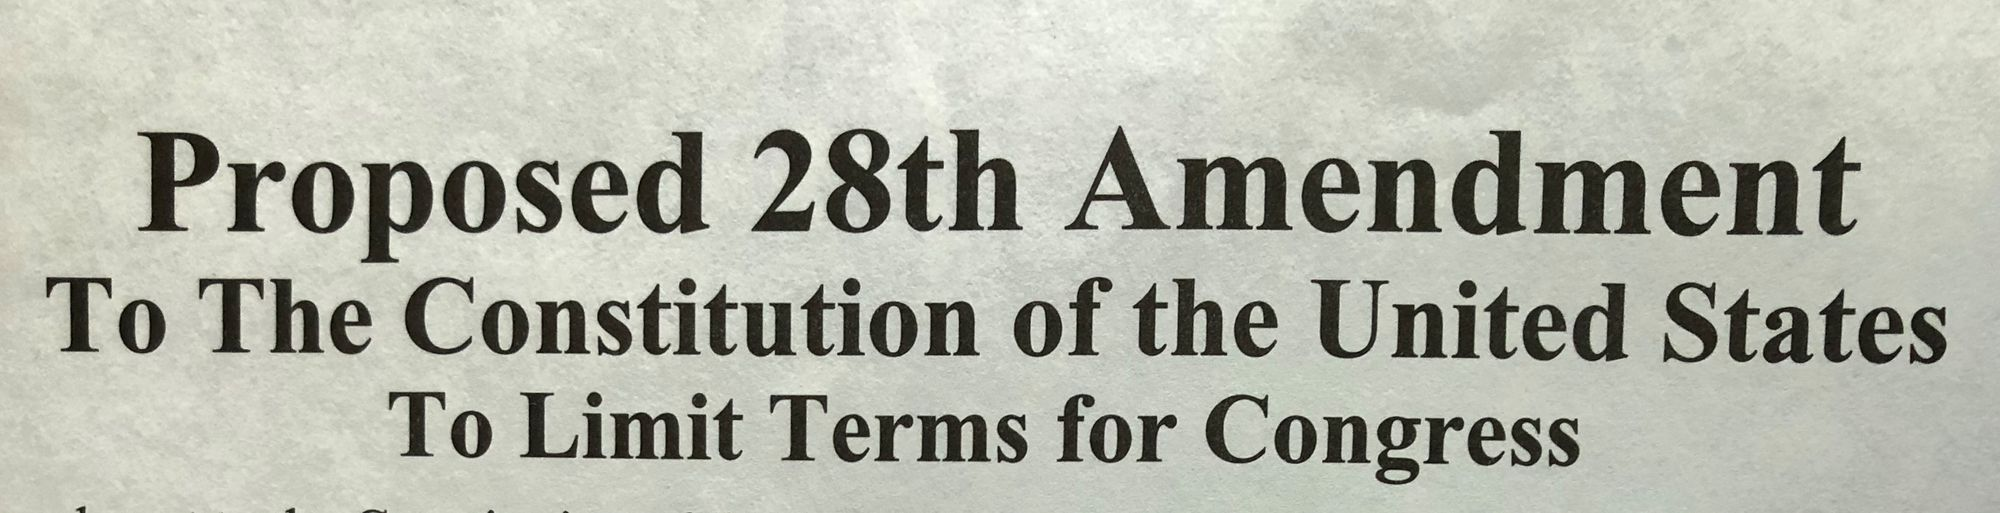 Proposed 28th Amendment To Limit Terms For Congress